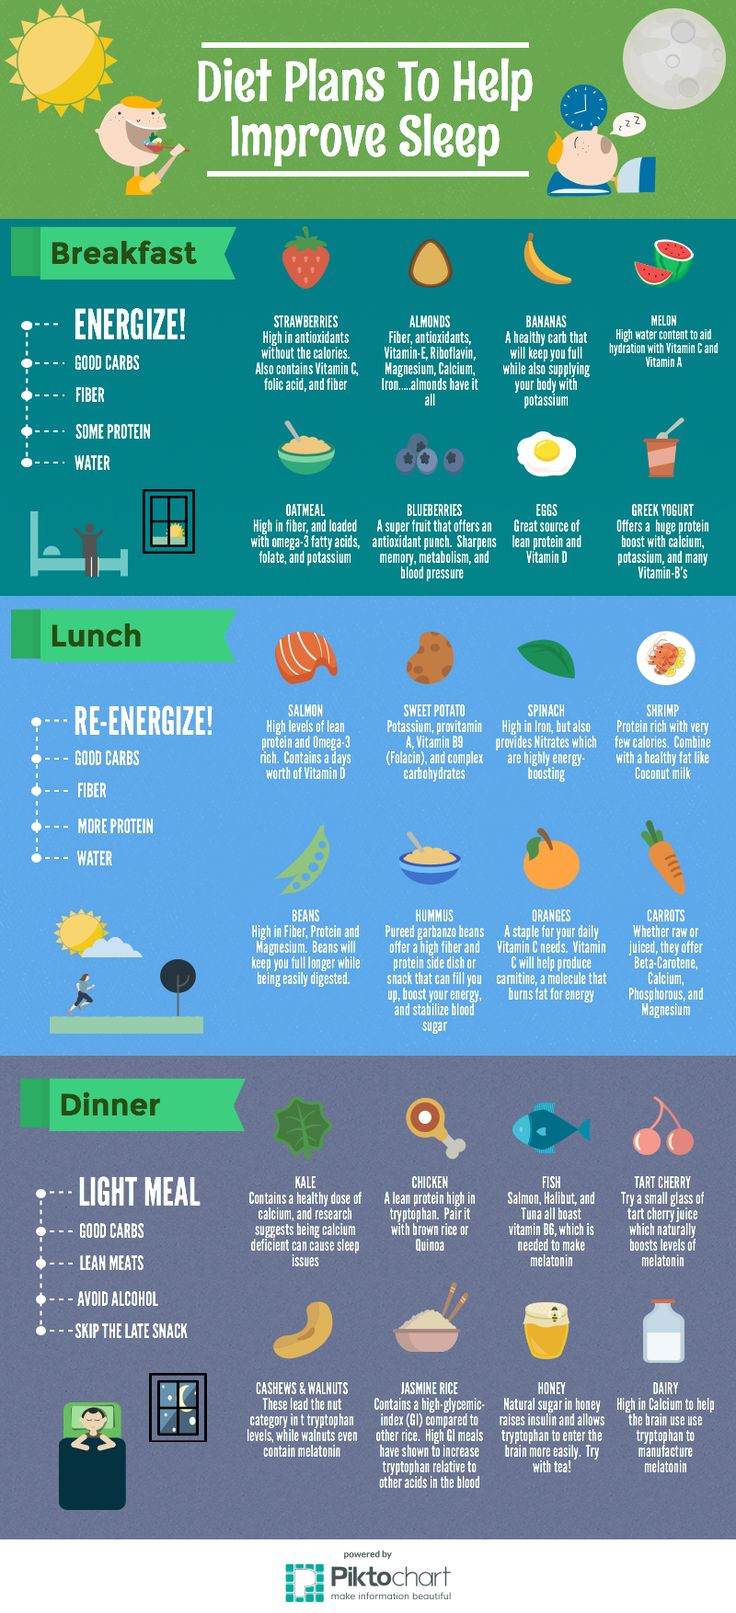 There are foods that help you sleep as well as give you energy.  Your consumption of these foods throughout the day will set the standards of how you prepare for the night.  Here we will look at diet tips for giving you energy throughout the day, and setting the tone for a good nights sleep.